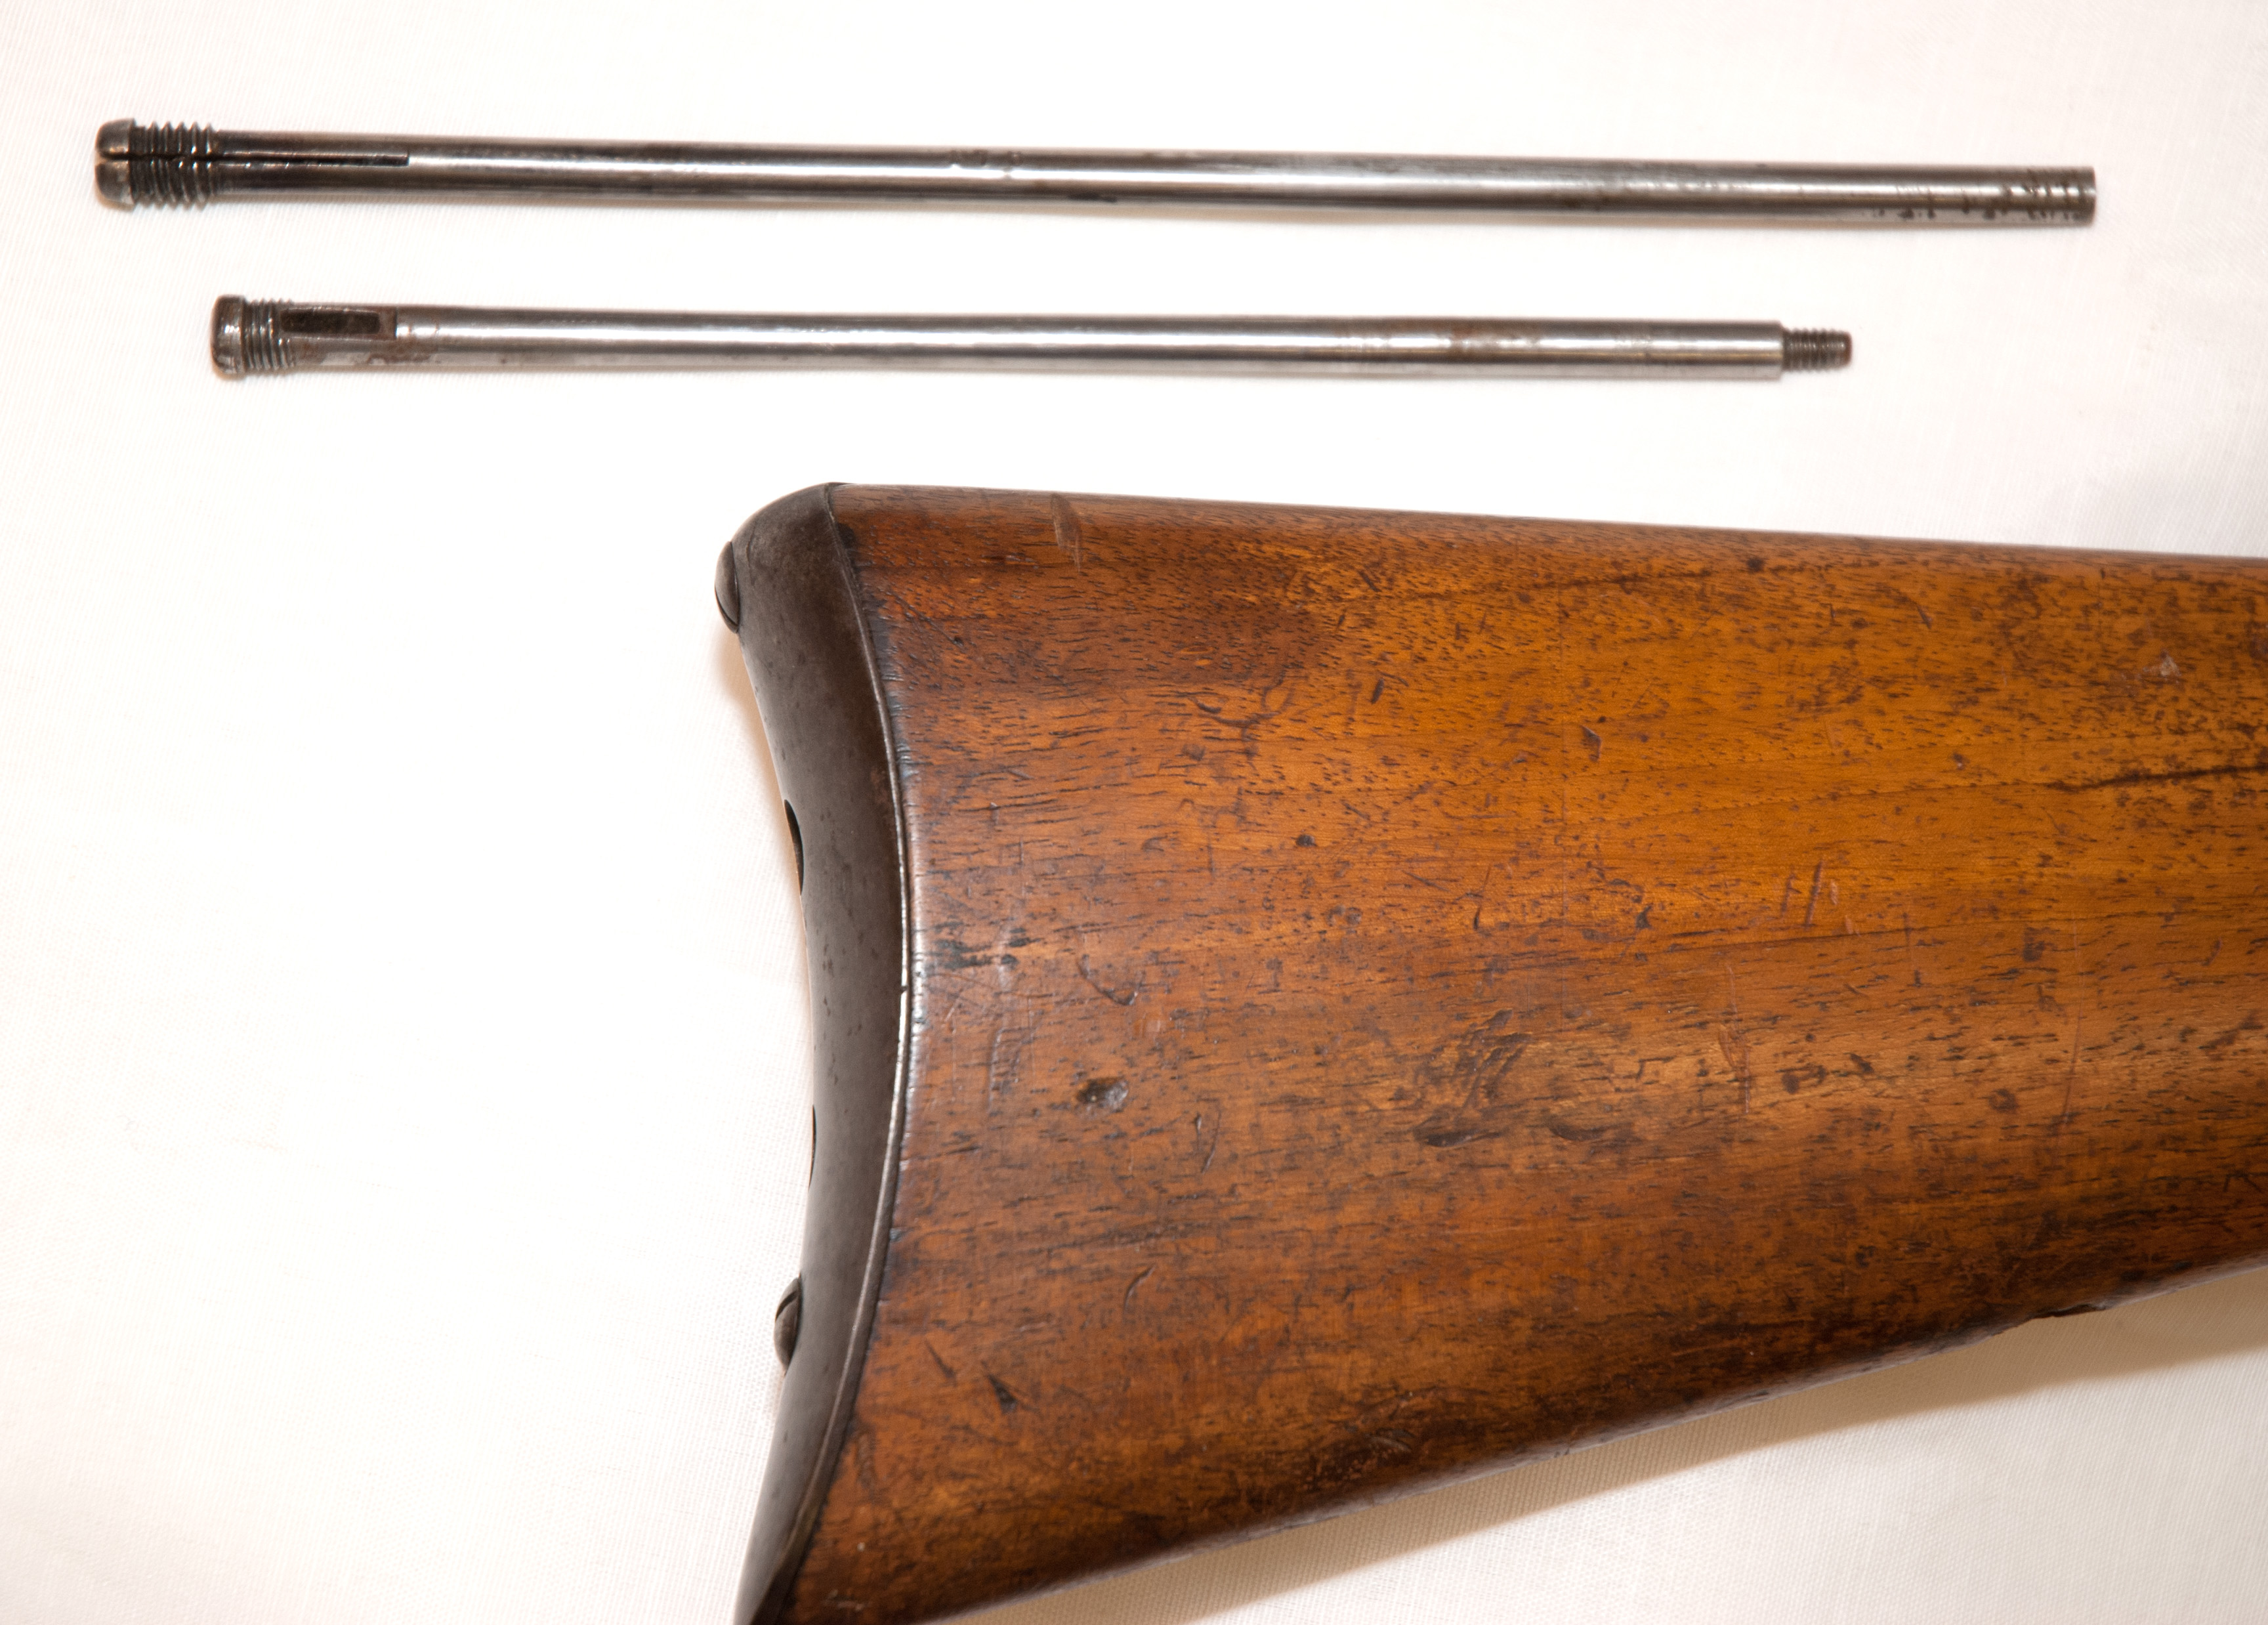 ./guns/rifle/bilder/Rifle-Kongsberg-Jarmann-M1884-Sivil-178-9.jpg